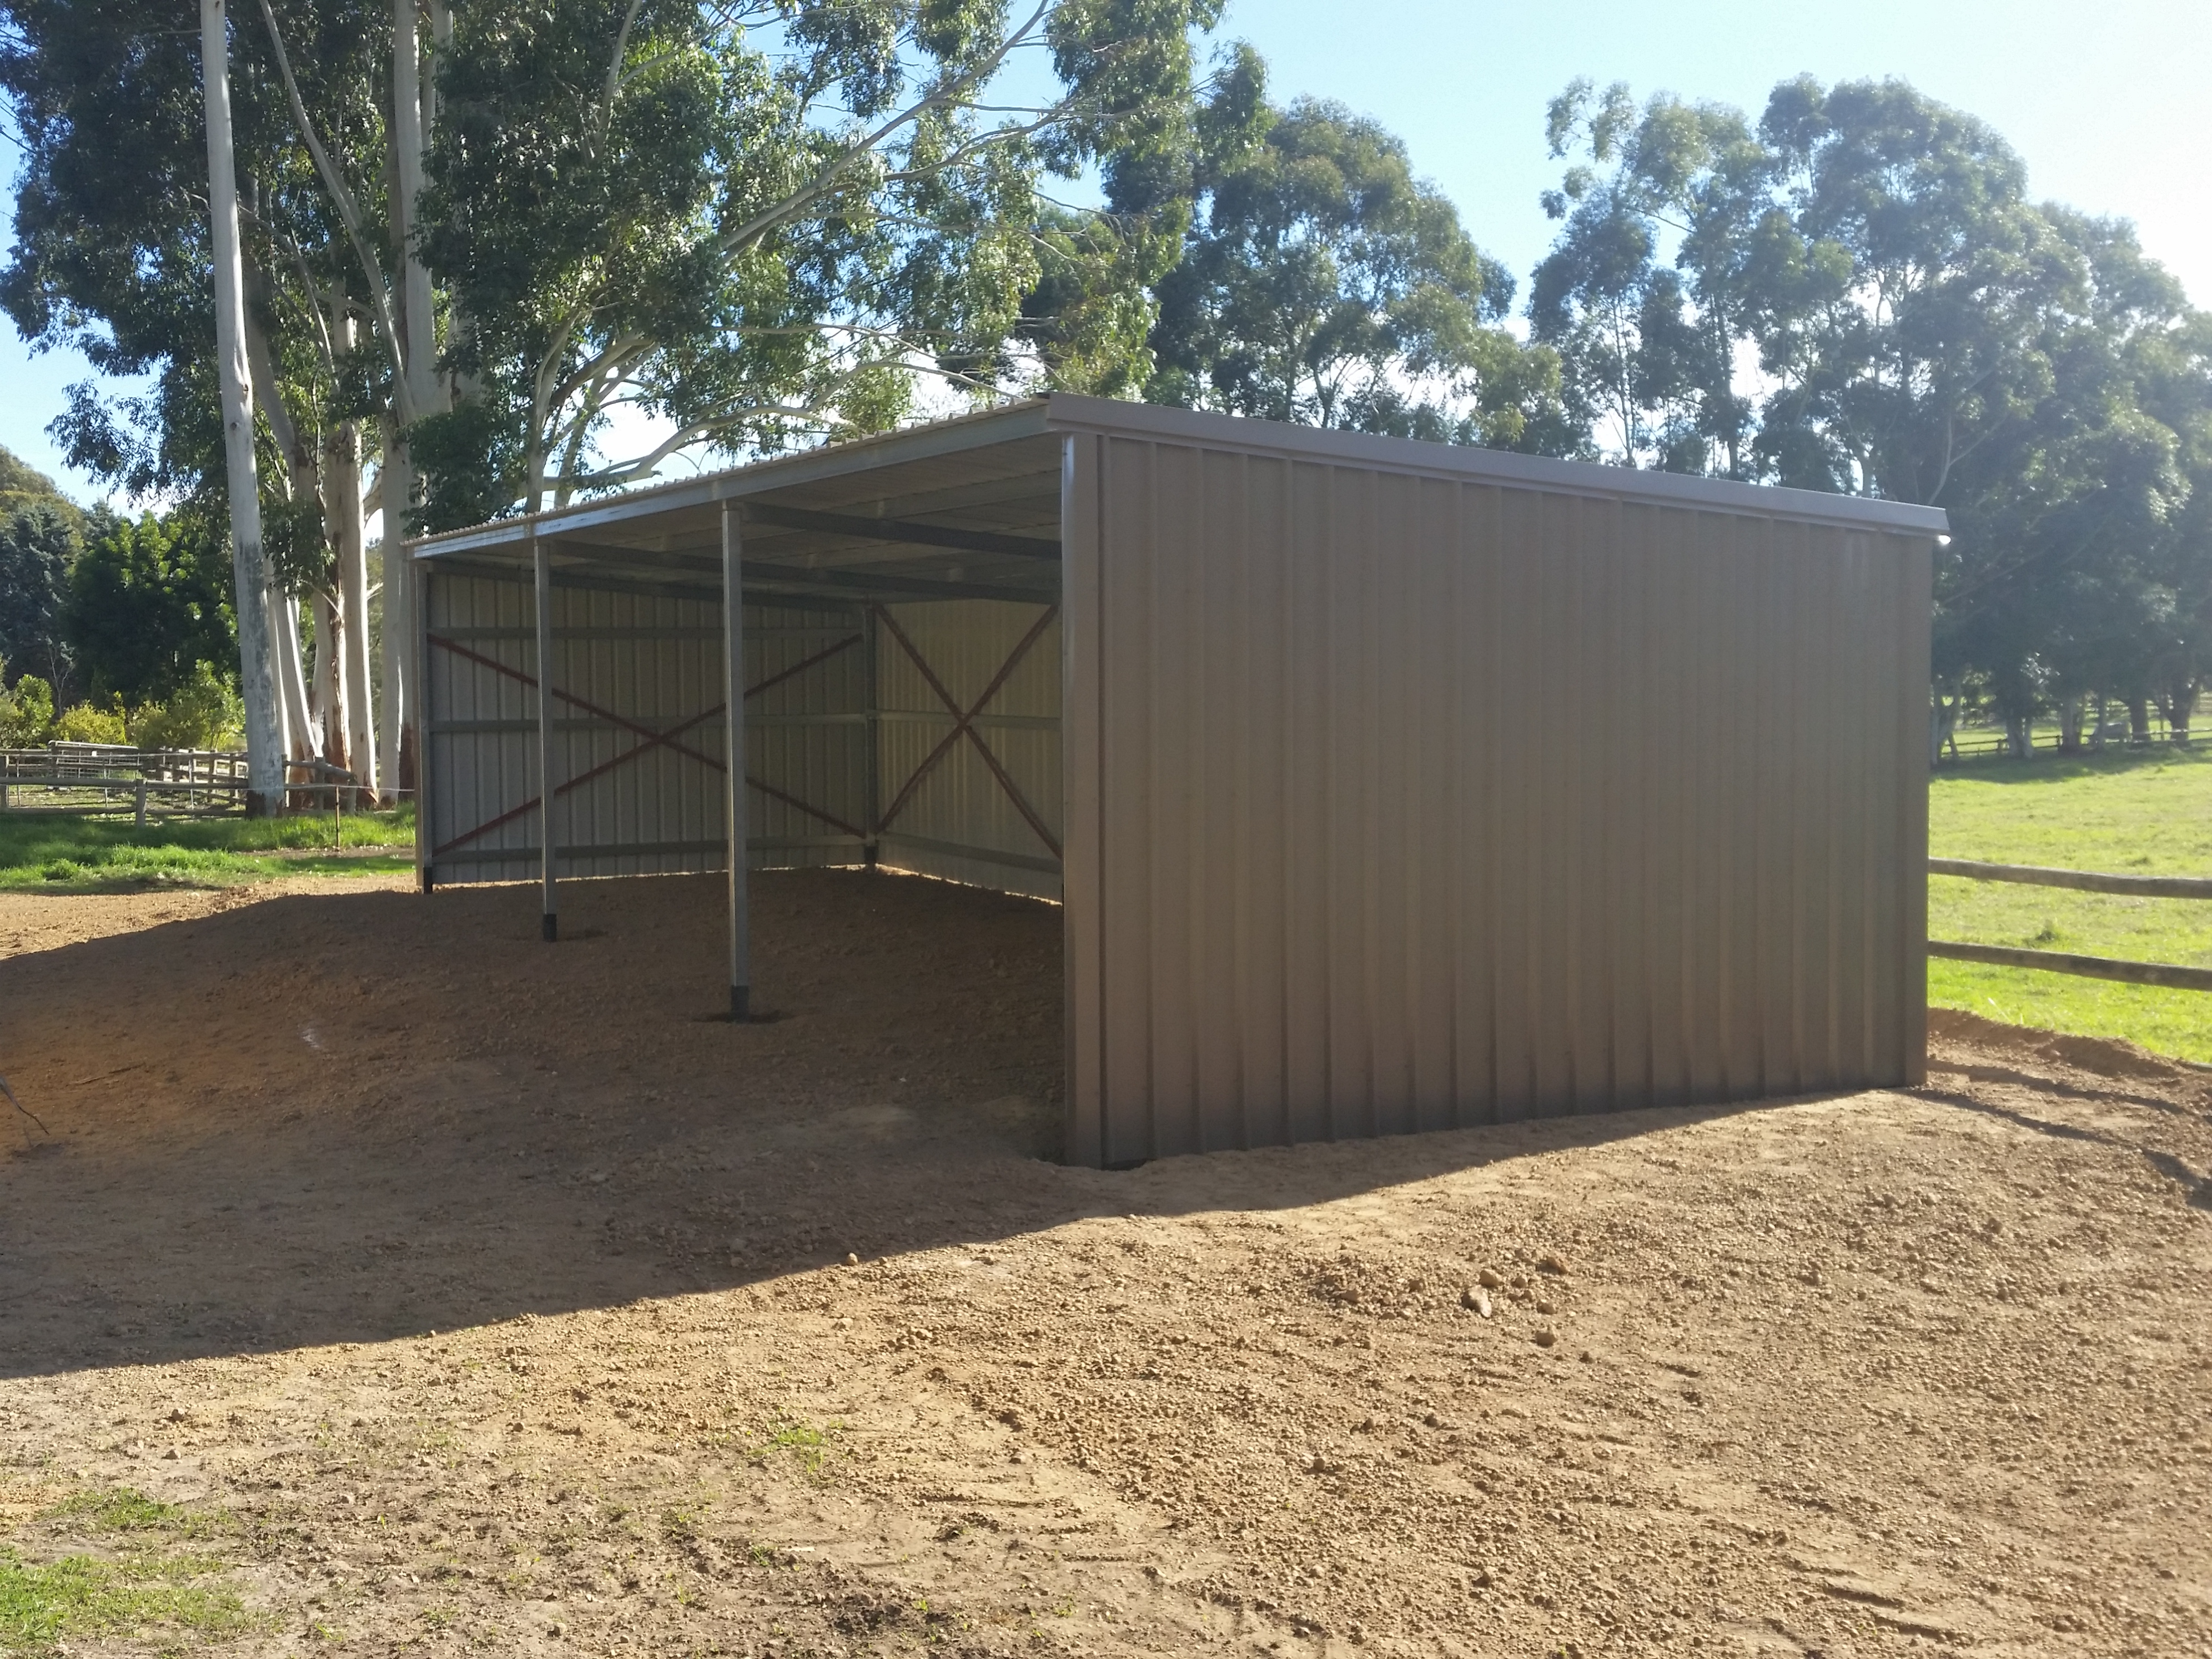 Horse shelter 12x4x3